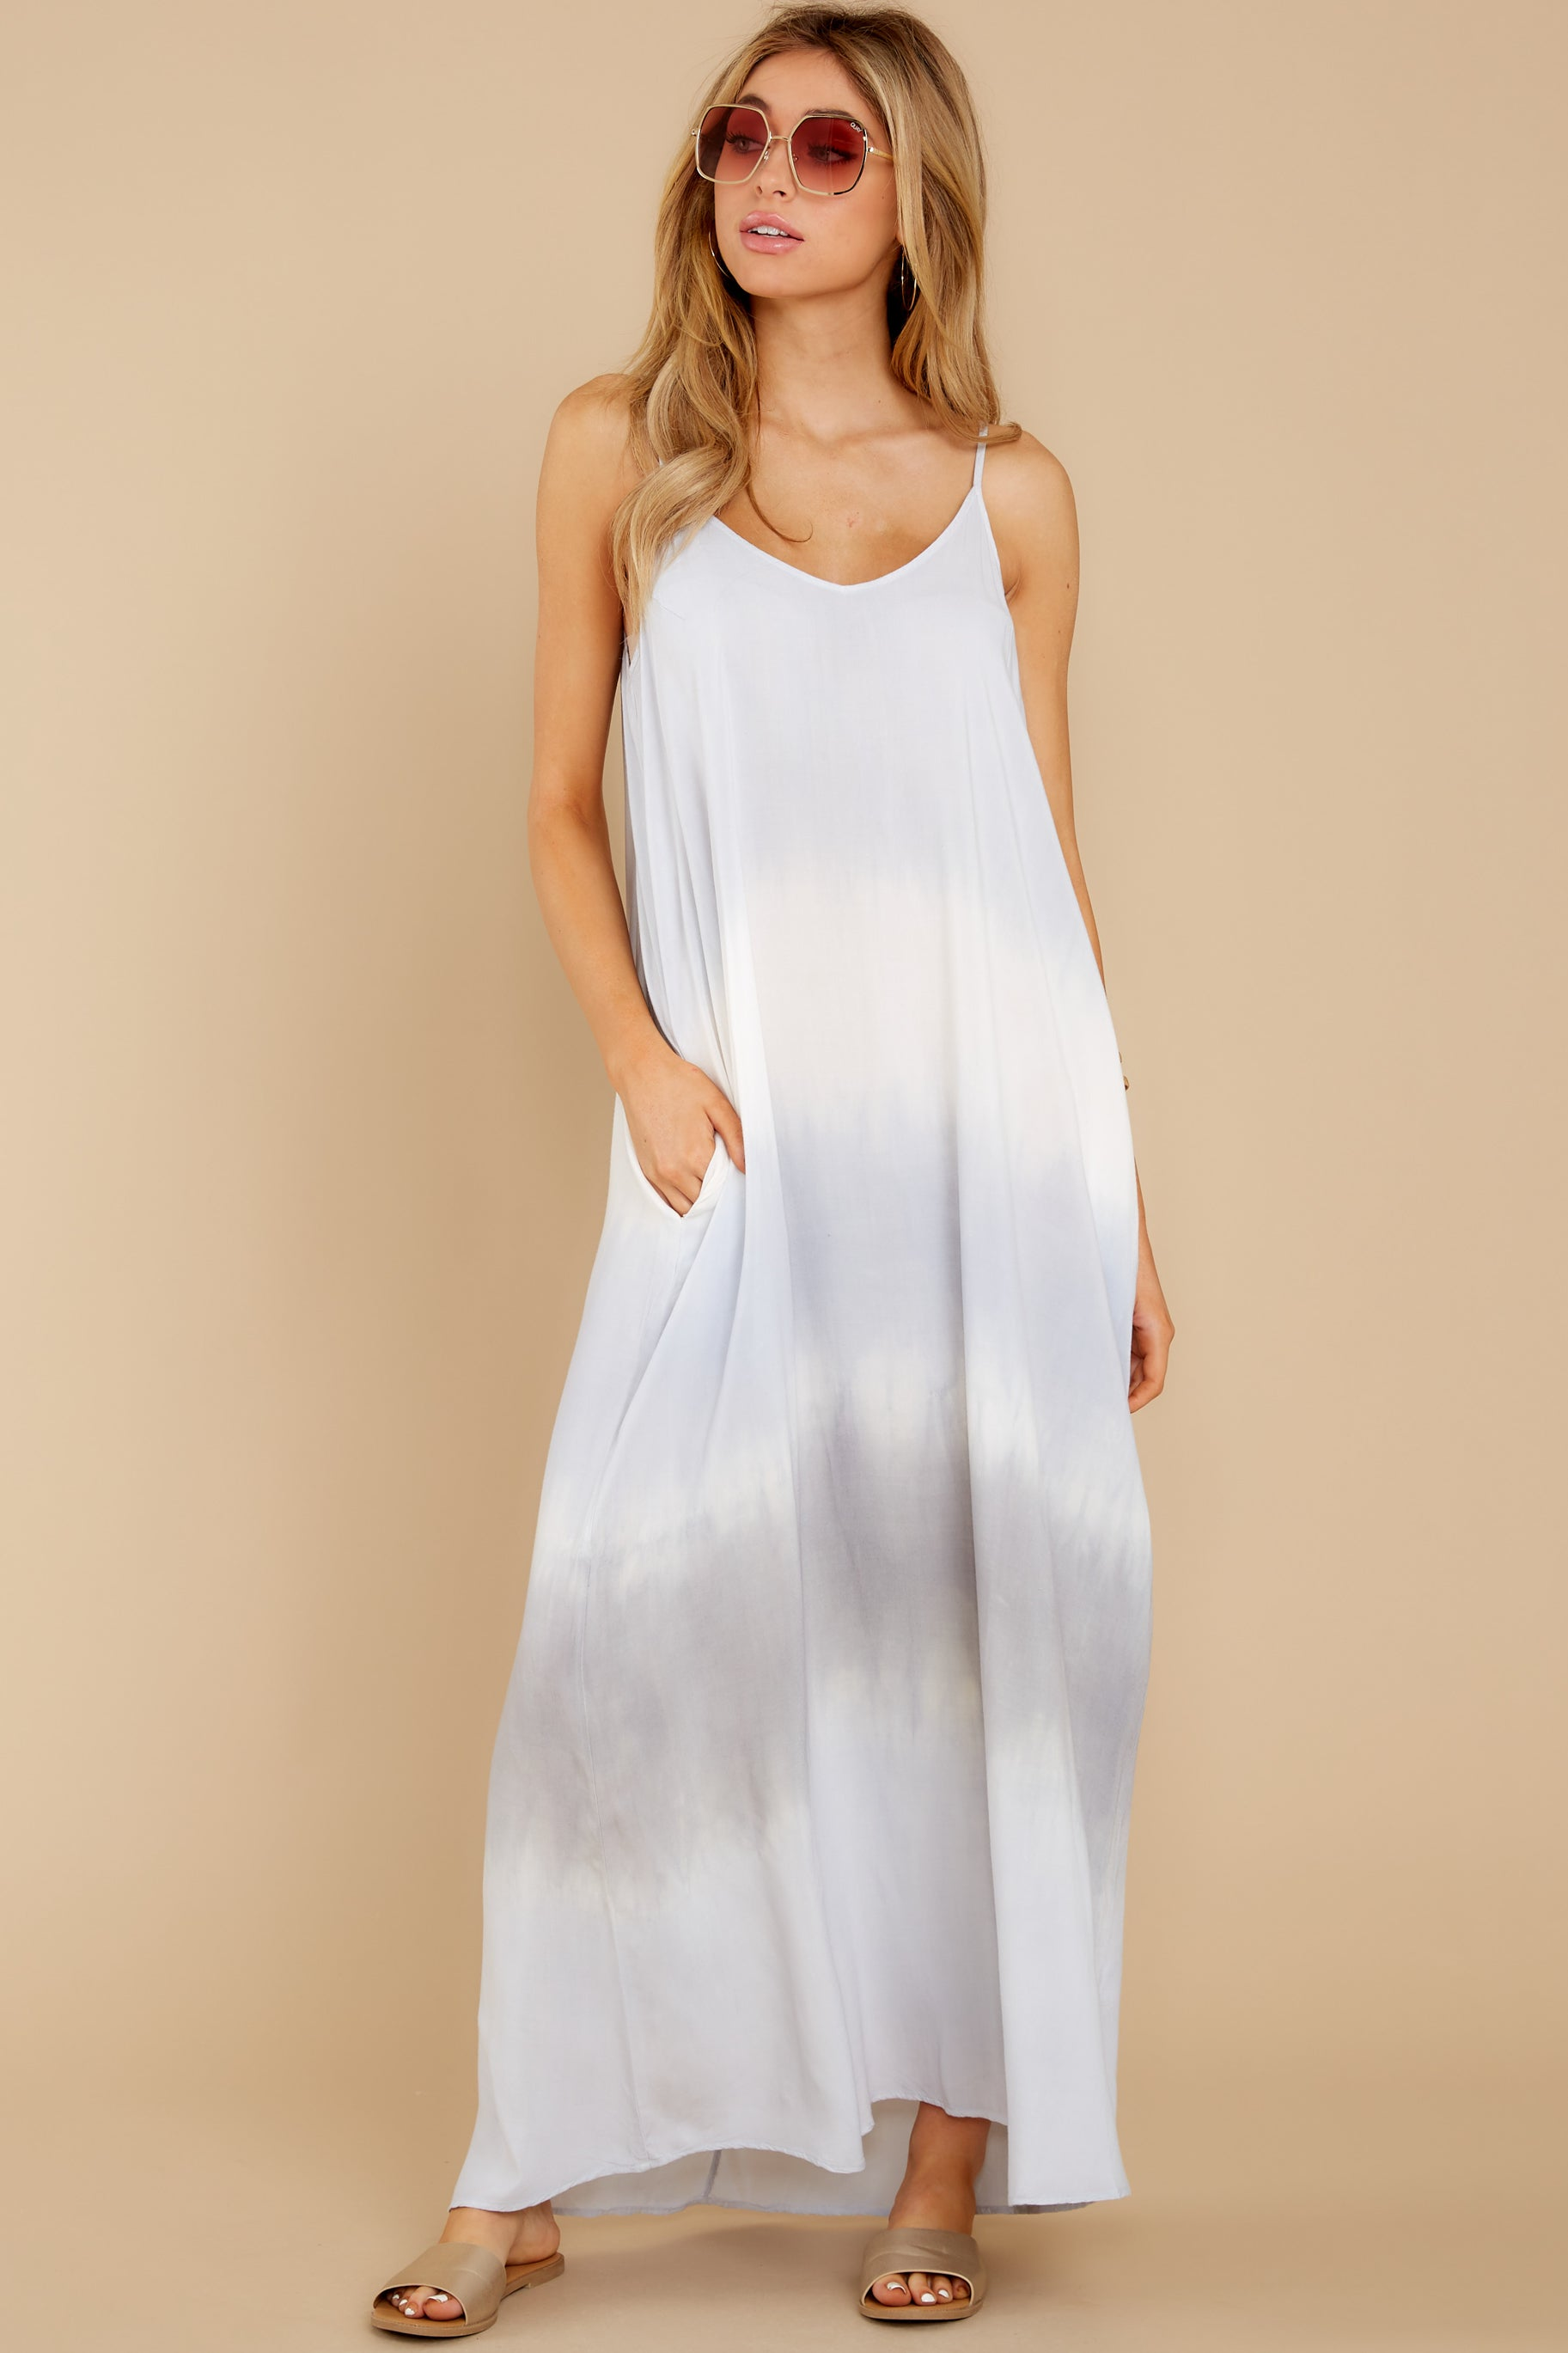 2 All My Love Light Blue Multi Maxi Dress at reddress.com